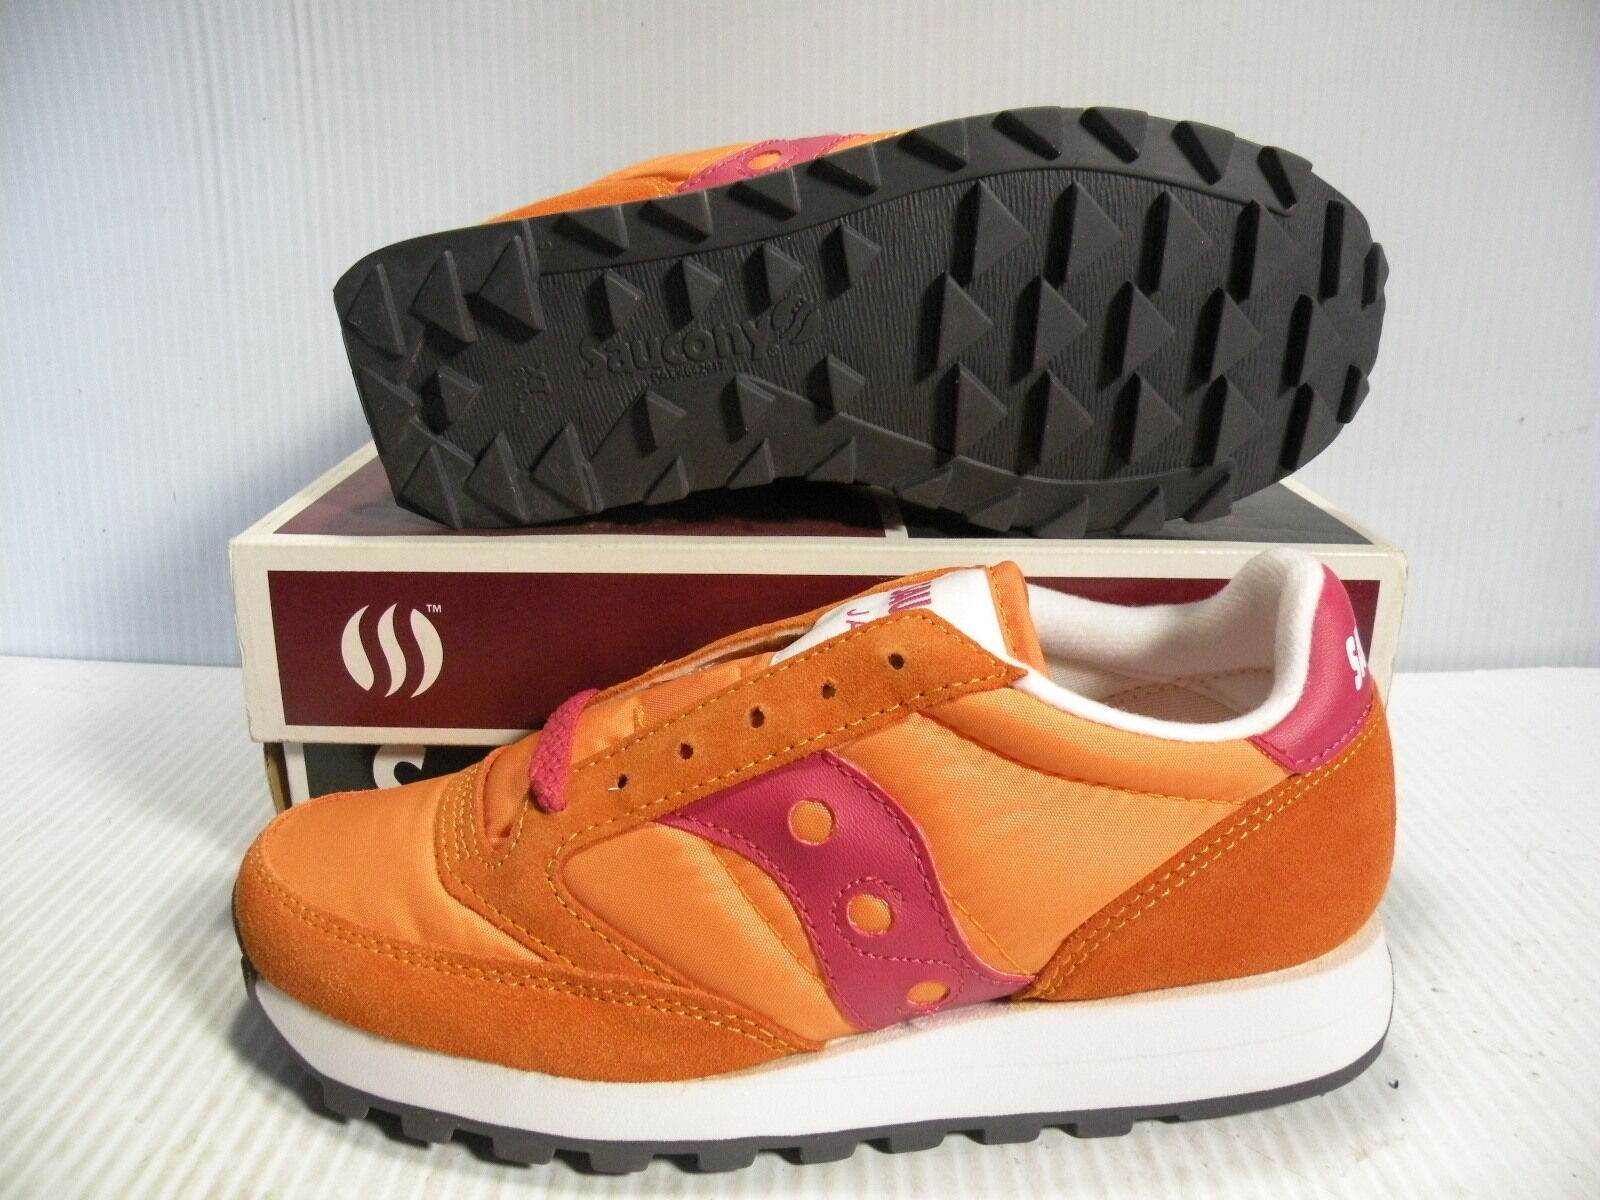 SAUCONY JAZZ ORIGINAL LOW SNEAKERS WOMEN SHOES ORANGE/RED 1044-92  SIZE 5.5 NEW